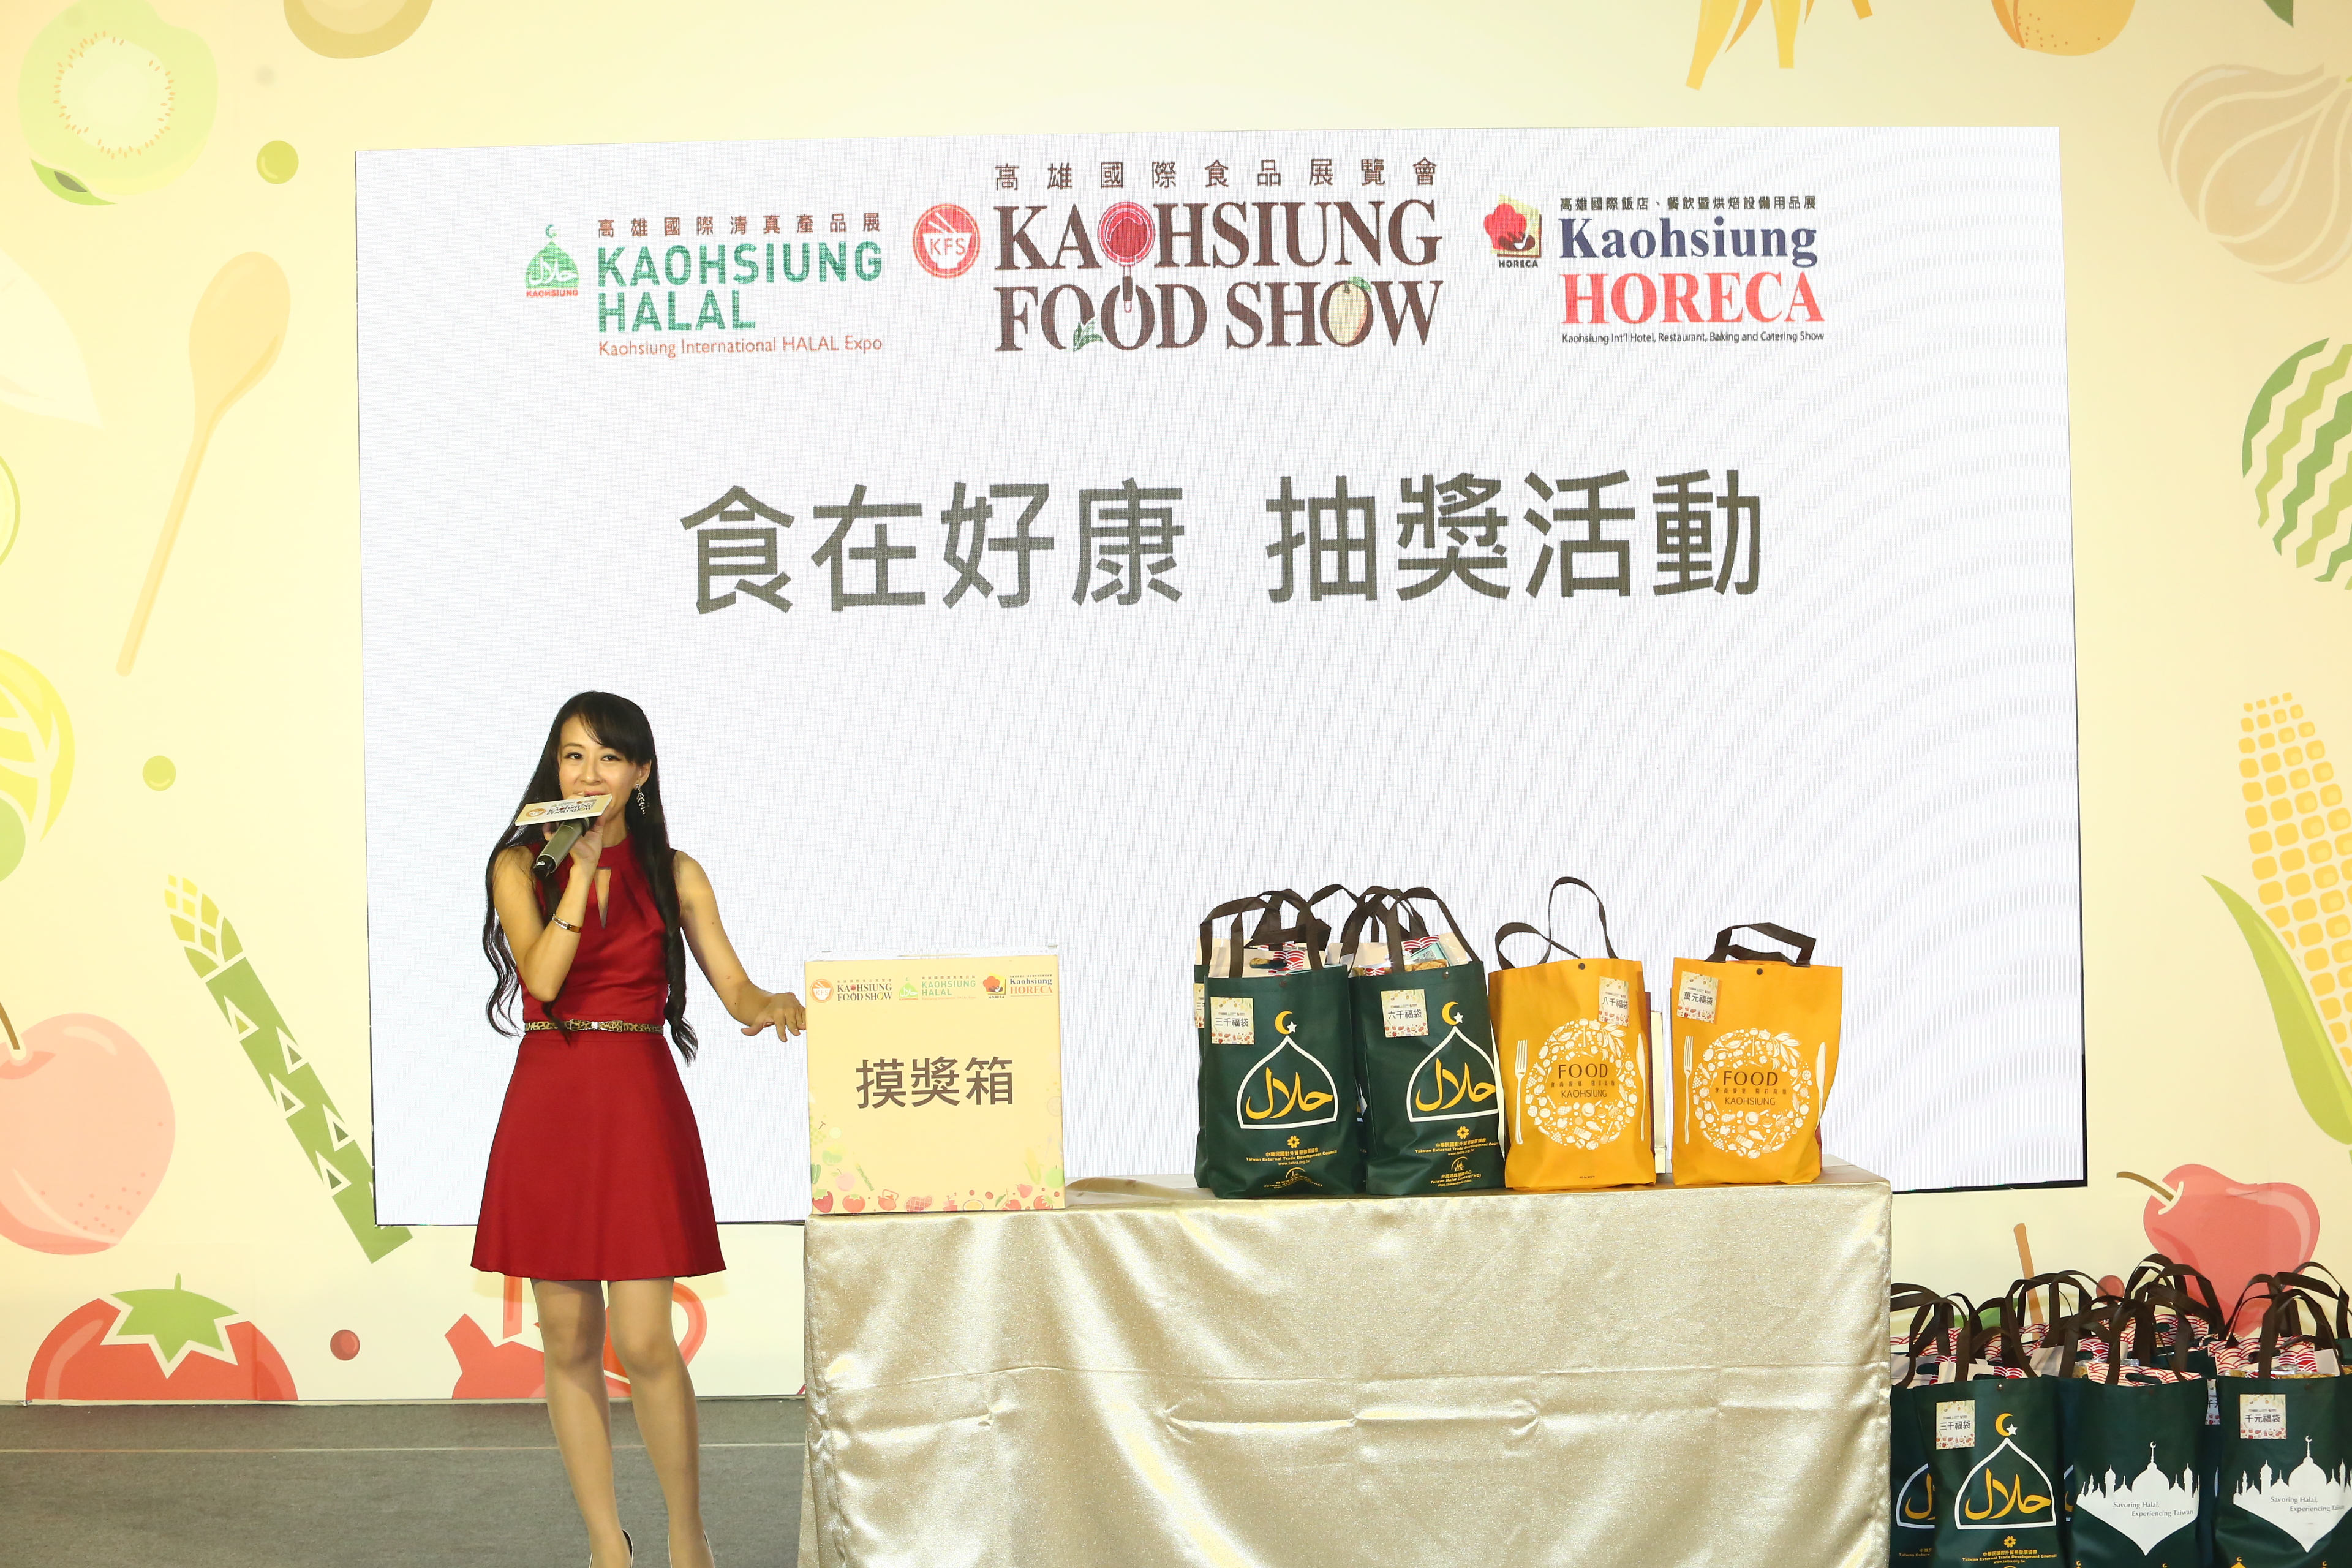 https://storage.googleapis.com/www.taiwantradeshow.com.tw/activity-photo/202010/T-44056441-name.jpg